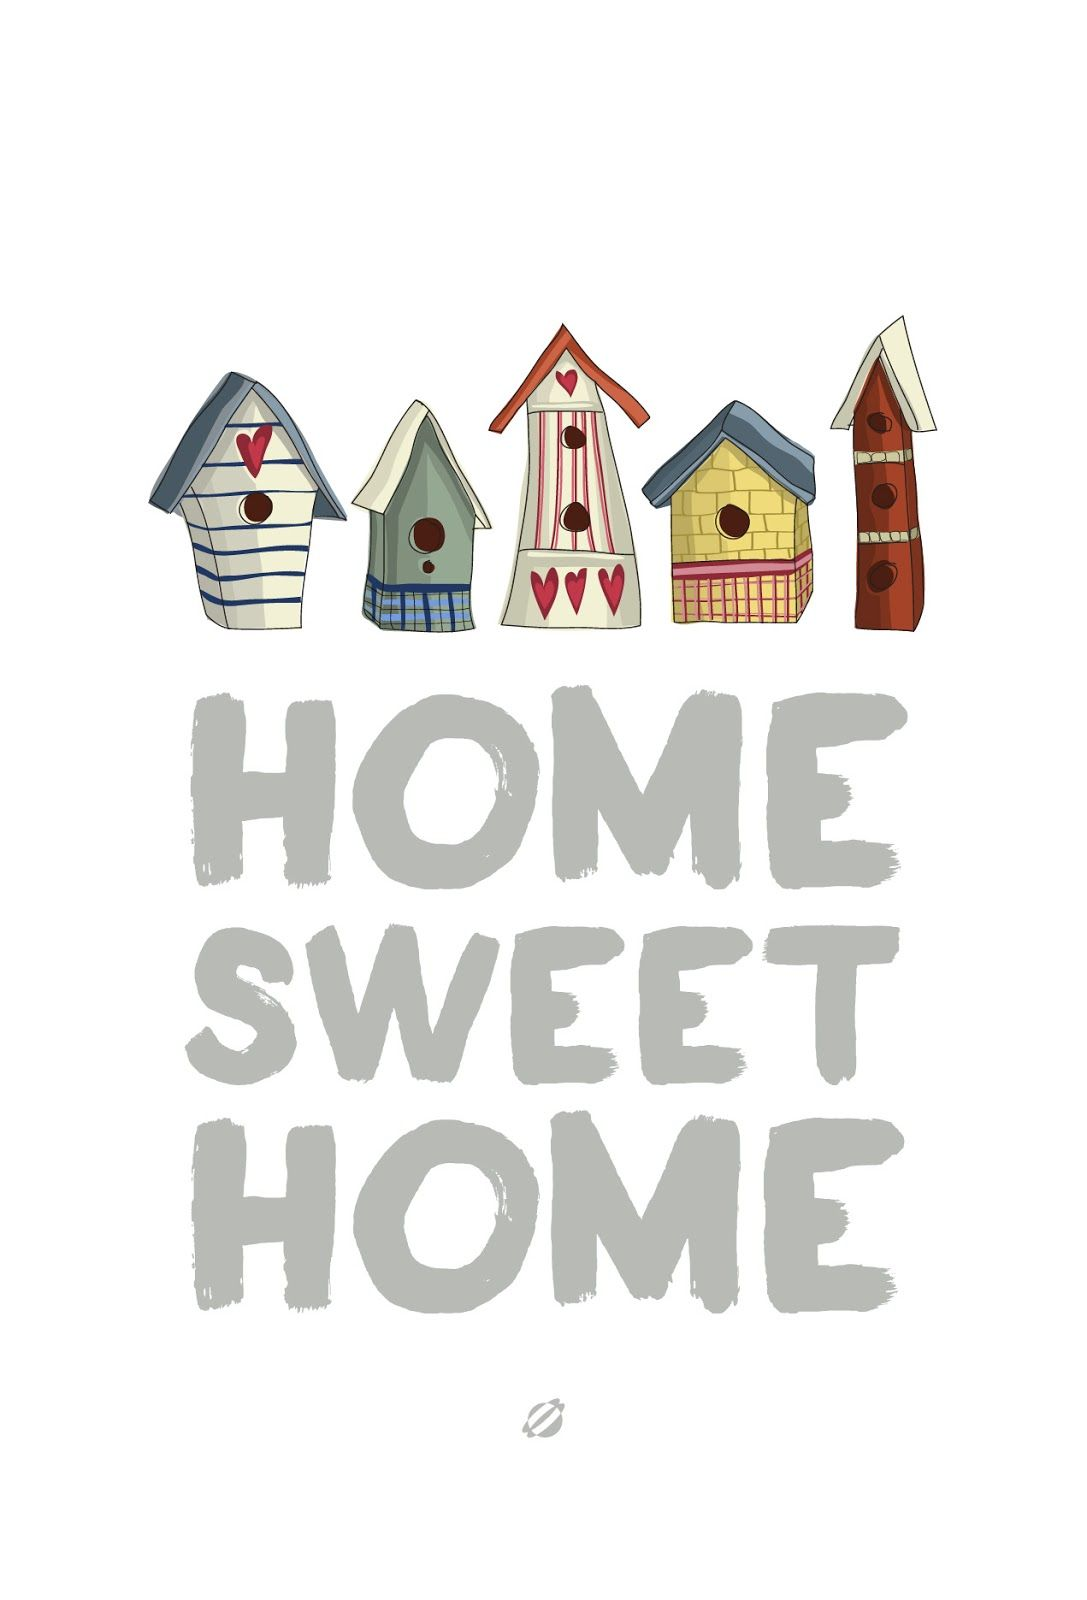 Free quote printable home sweet home lostbumblebee for Home sweet home quotes